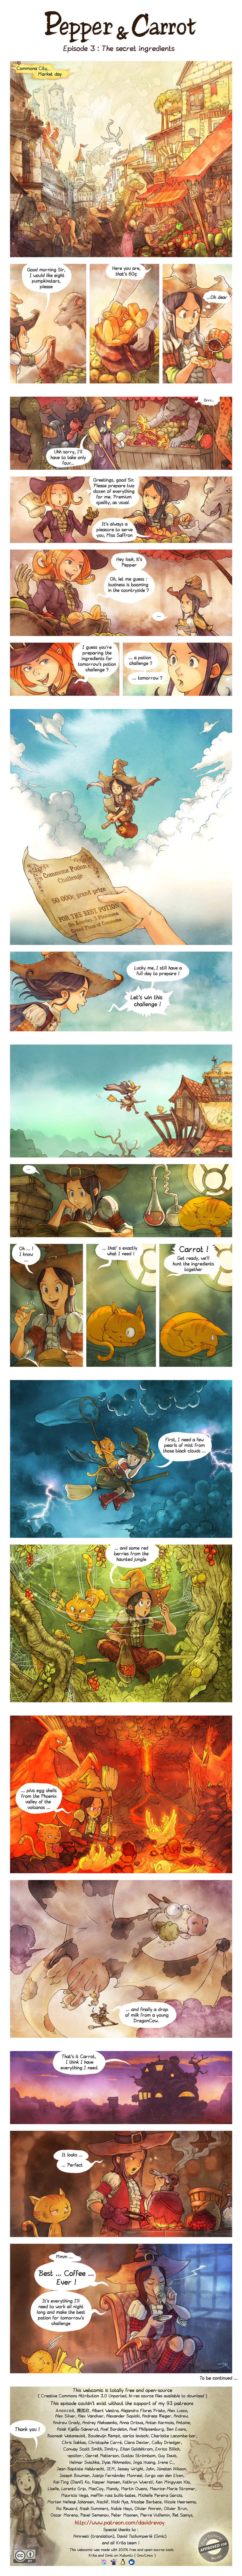 'Pepper and Carrot' Ep 3 : The secret ingredients